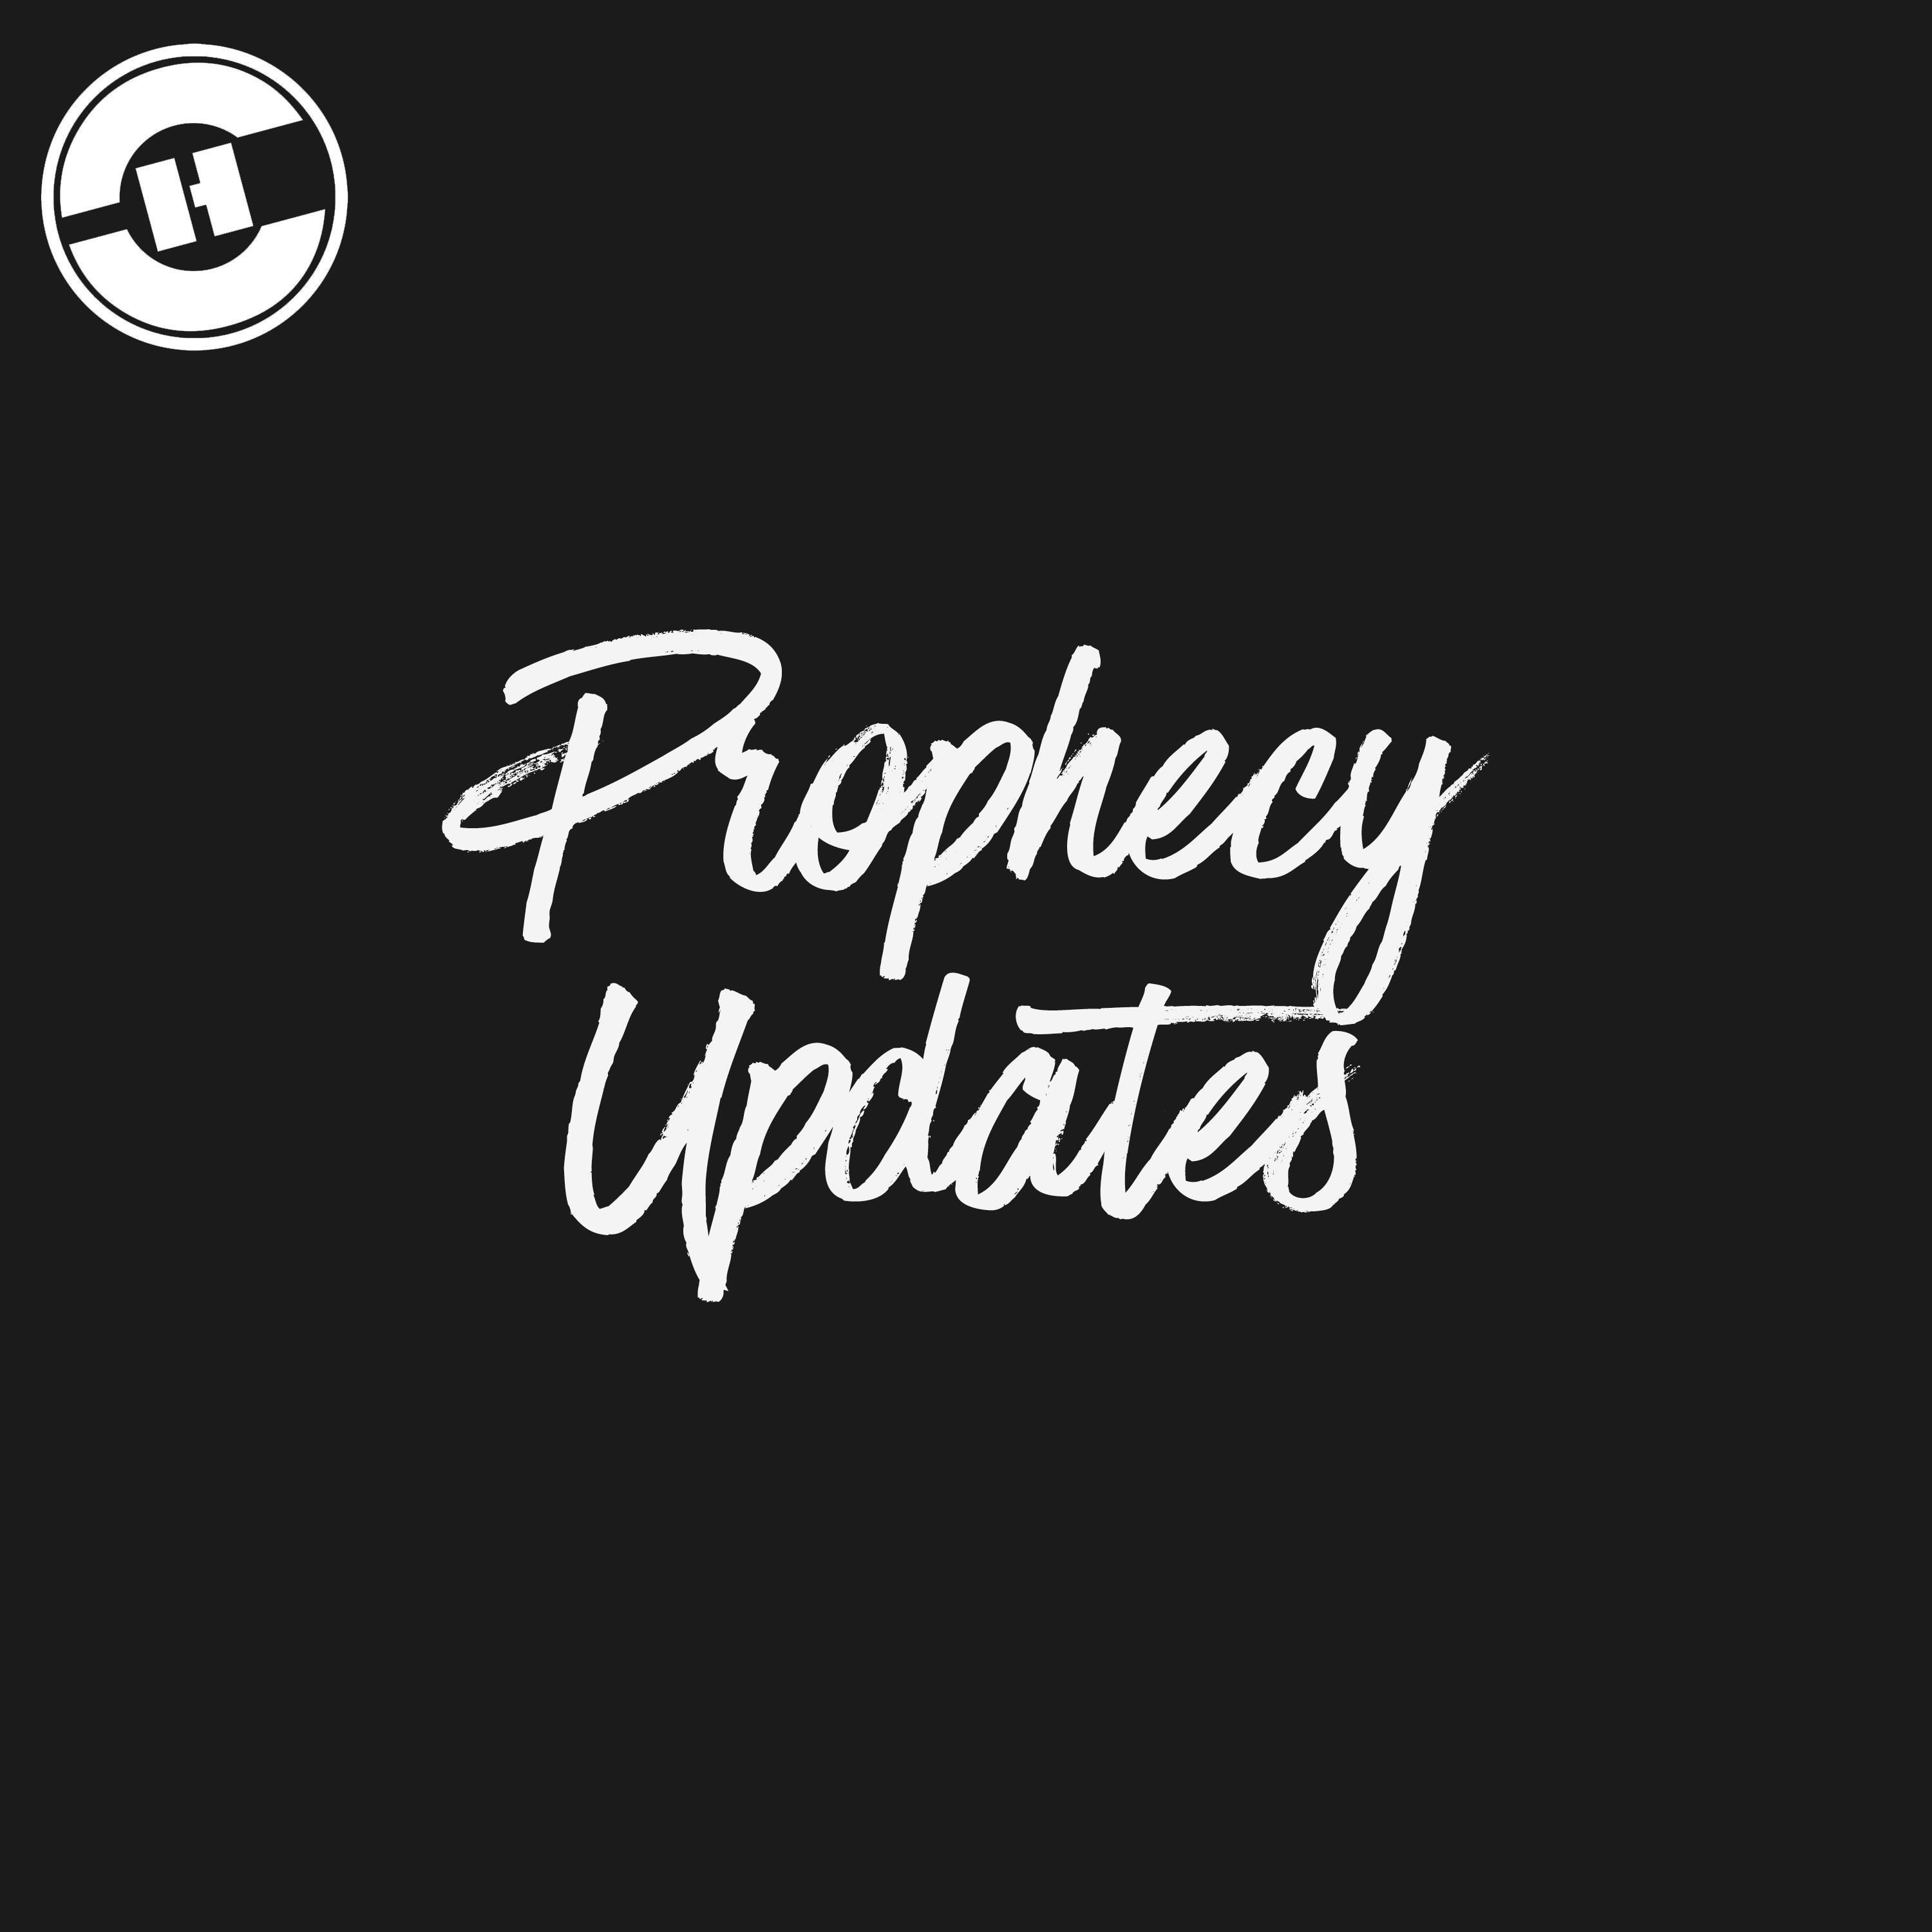 Calvary Hanford Prophecy Updates